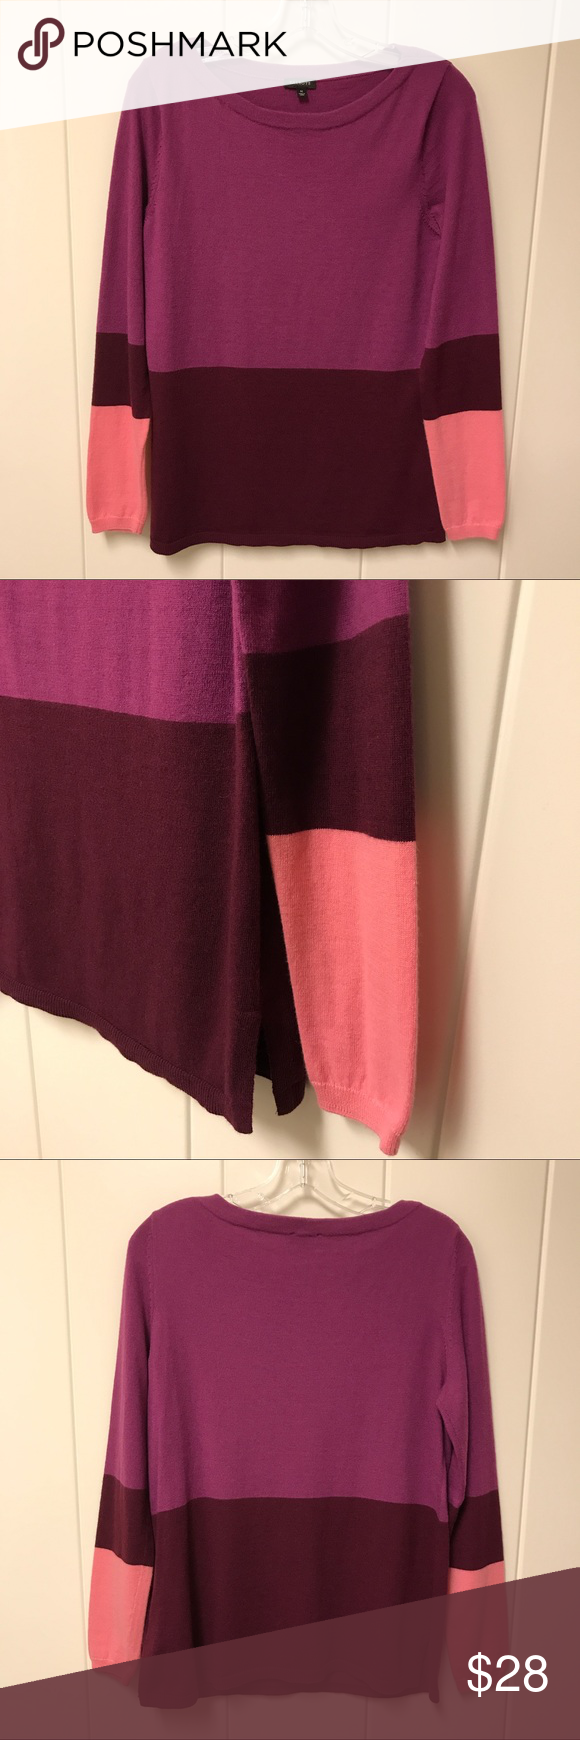 Talbots Purple Color Block Sweater Wool Blend M Fuchsia, purple and pink color blocked soft and warm sweater.  Material is 70% nylon, 30% wool.  Very good preowned condition. Talbots Sweaters Crew & Scoop Necks